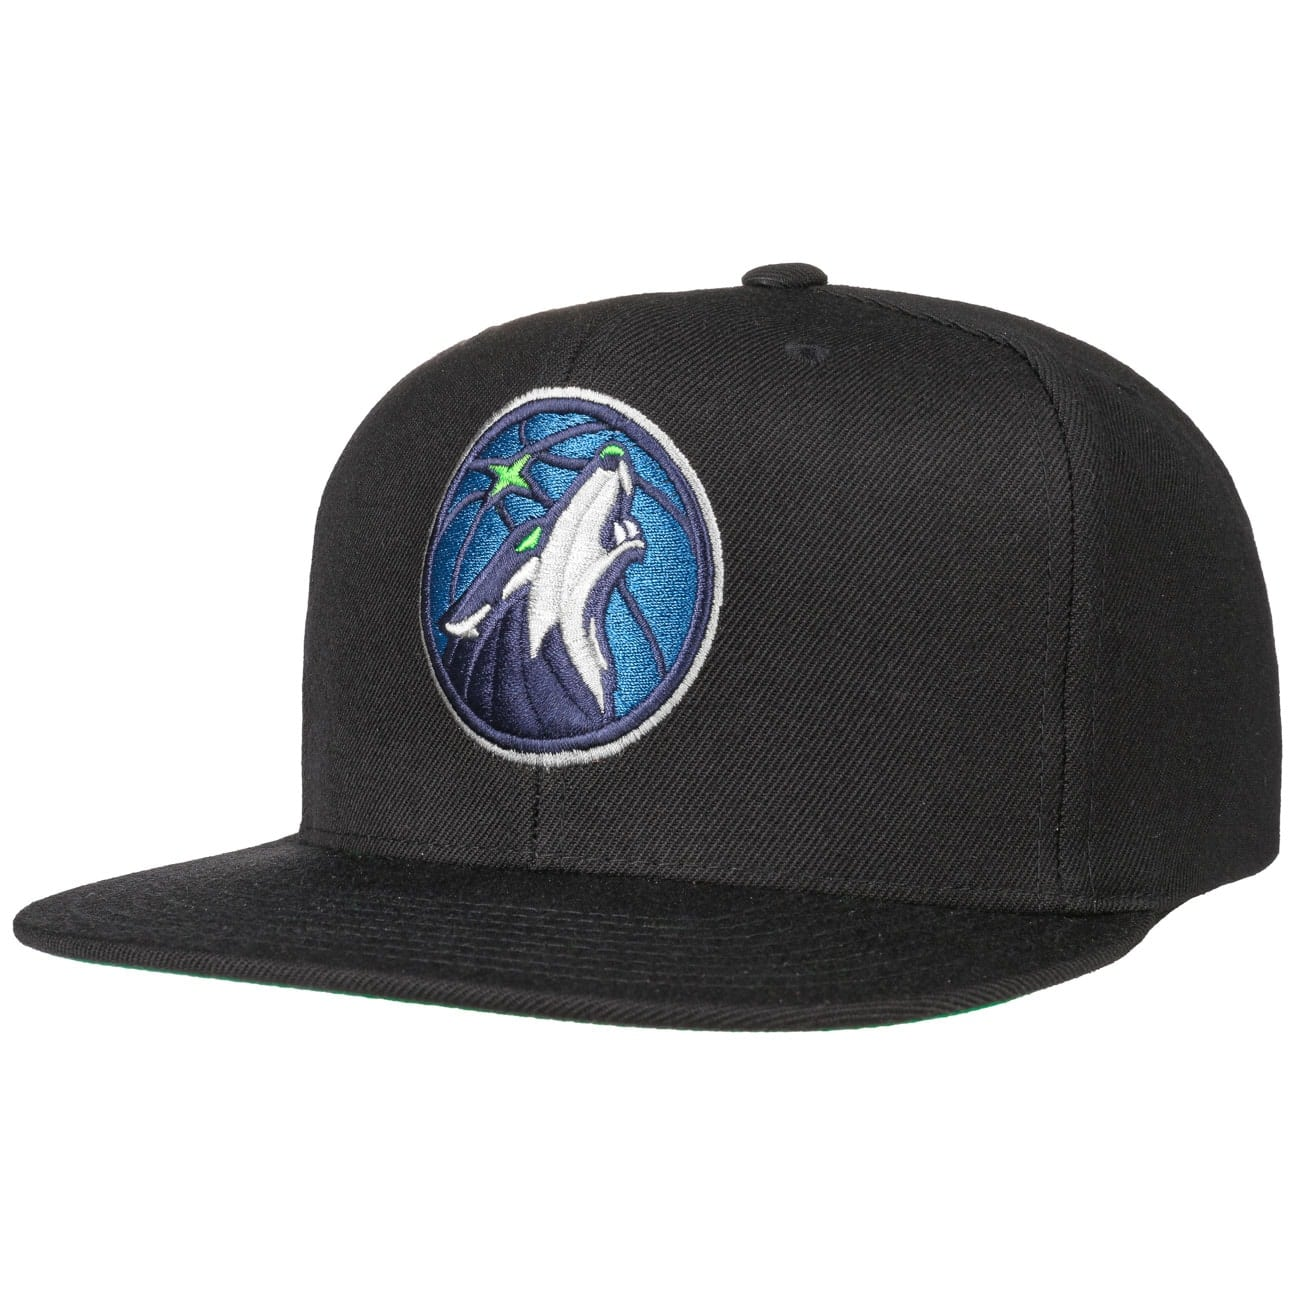 wool-solid-2-timberwolves-by-mitchell-ness